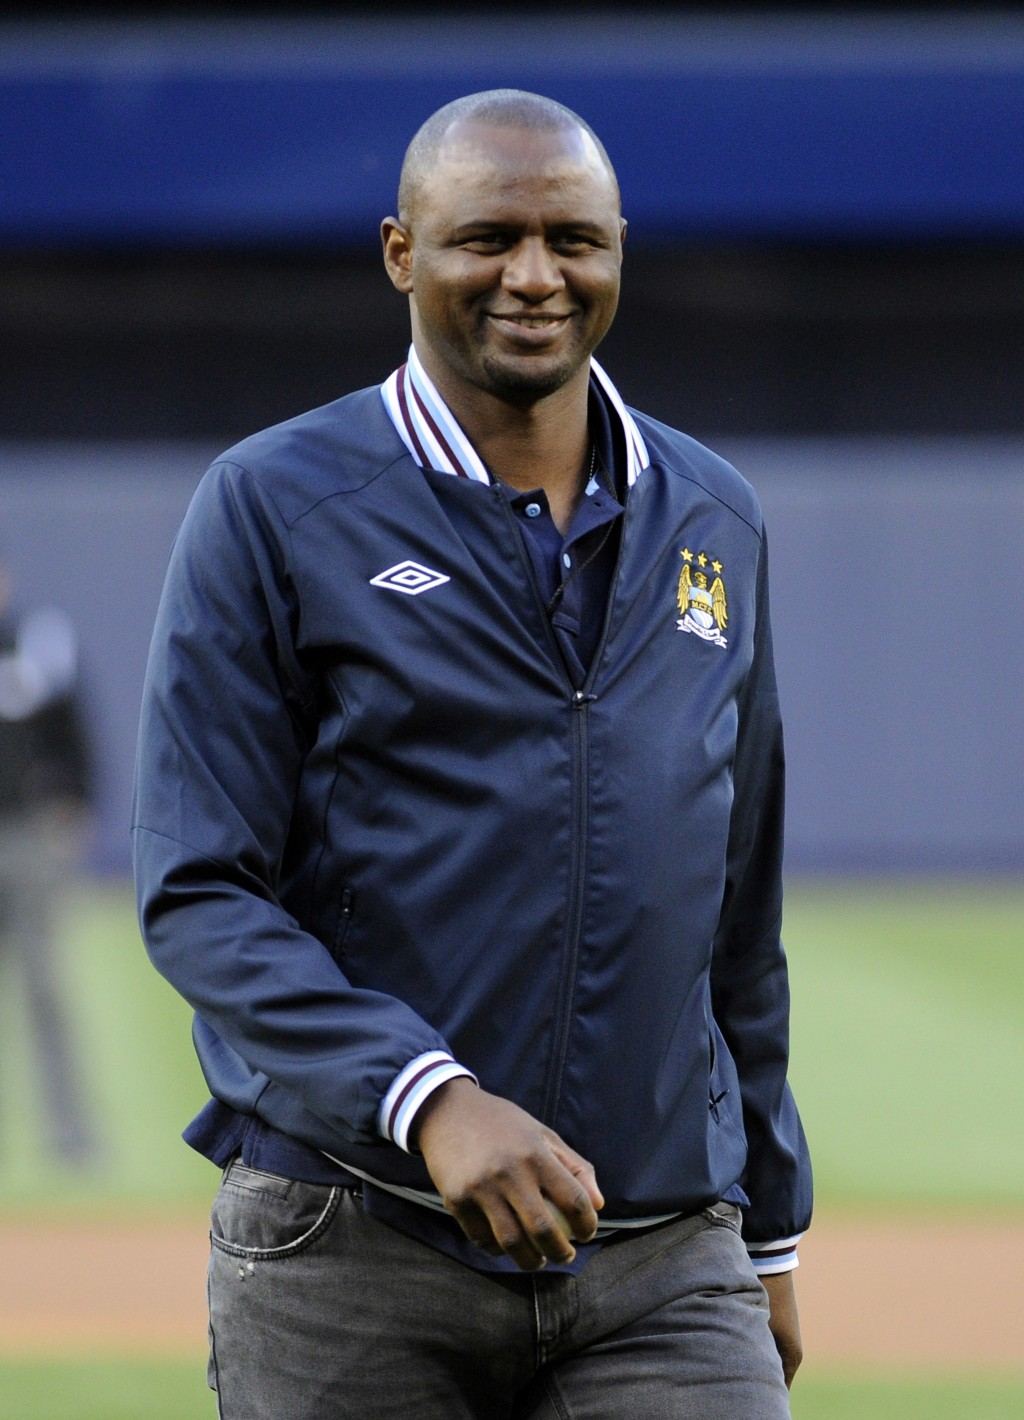 FILE - In this file photo dated Friday, May 17, 2013, Patrick Vieira of Manchester City reacts after throwing out the first pitch before the New York